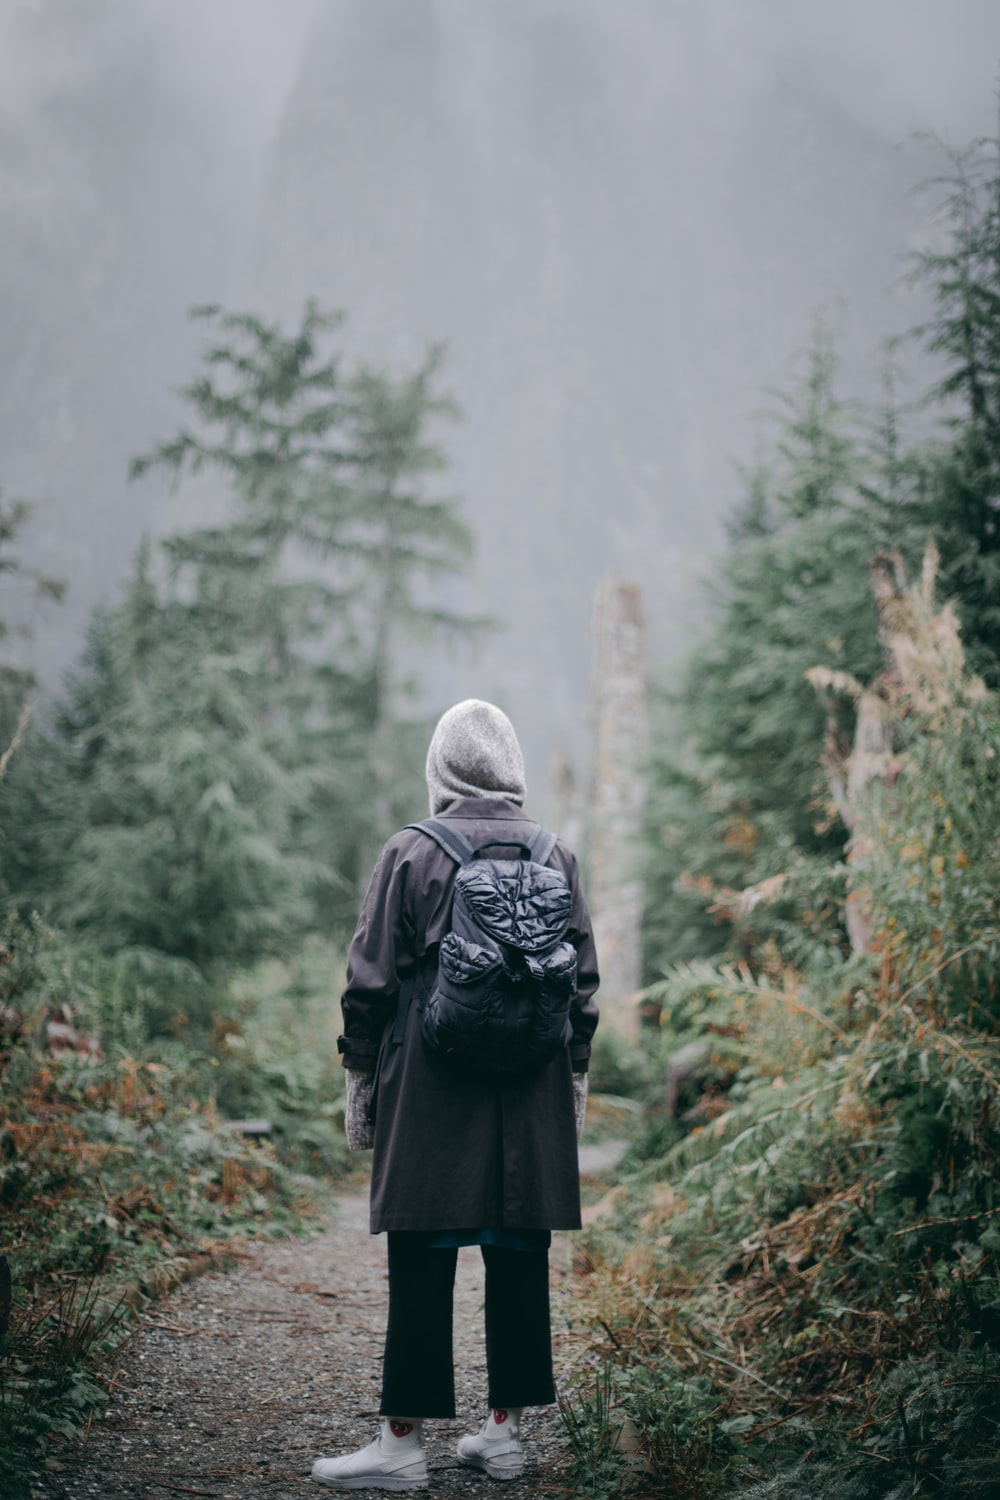 person in black jacket and gray backpack standing on gray rock in front of green trees